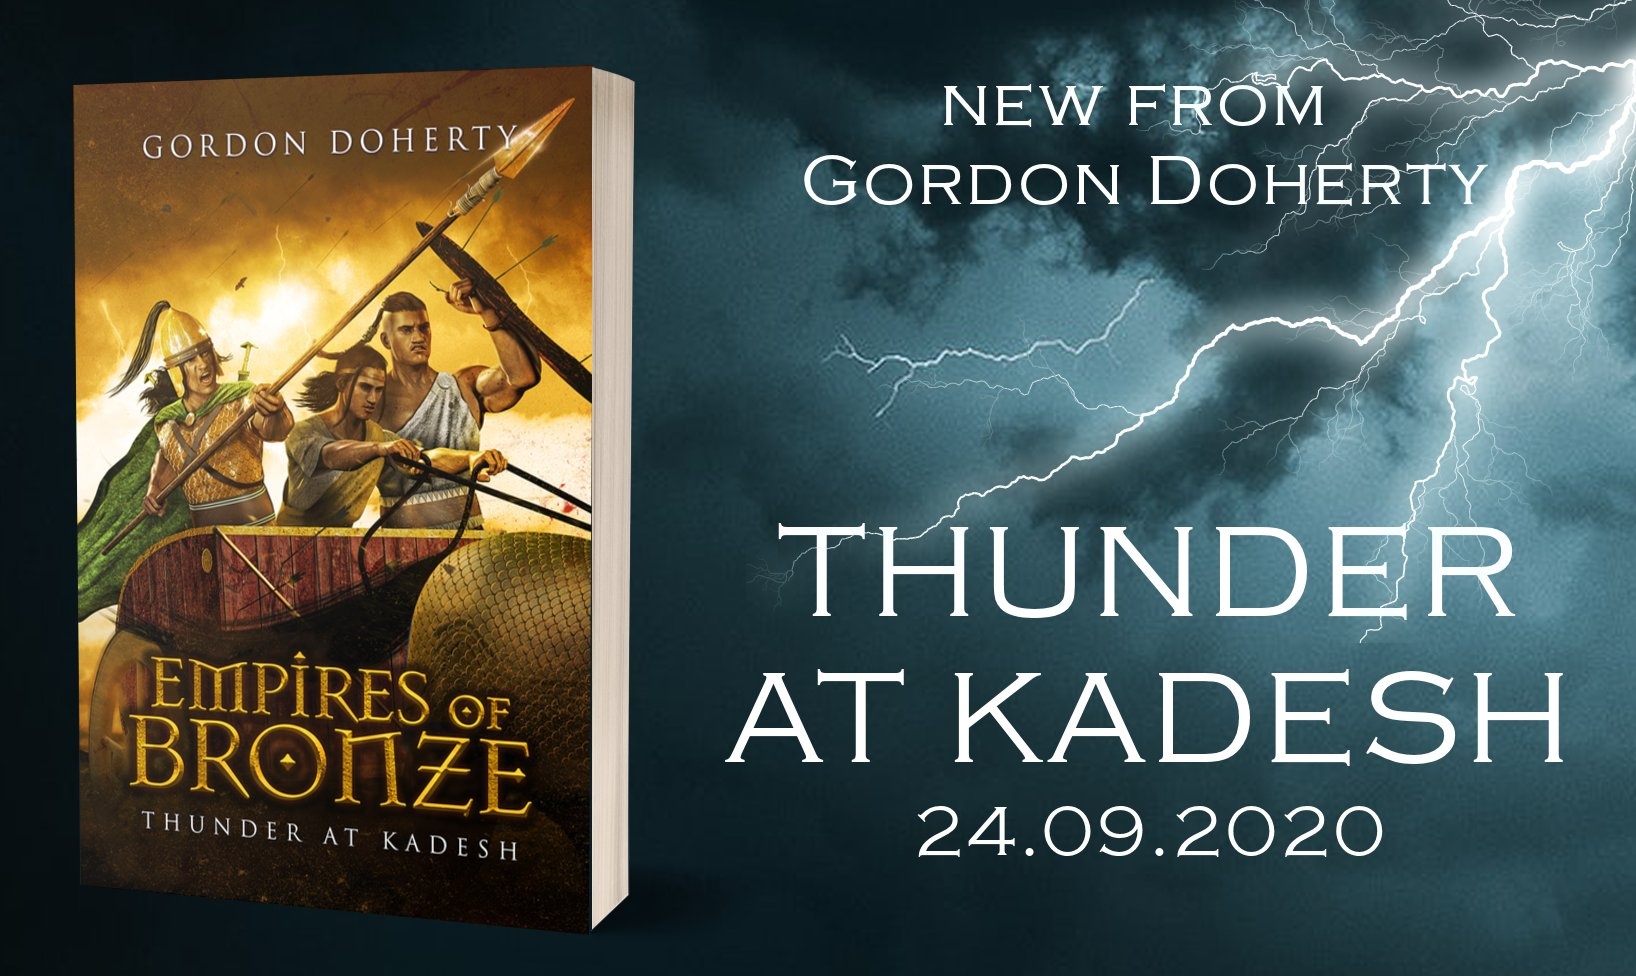 """Gordon Doherty on Twitter: """"𝗘𝗺𝗽𝗶𝗿𝗲𝘀 𝗼𝗳 𝗕𝗿𝗼𝗻𝘇𝗲: 𝗧𝗵𝘂𝗻𝗱𝗲𝗿  𝗮𝘁 𝗞𝗮𝗱𝗲𝘀𝗵 - launching on 24th Sept 2020, available for #PreOrder  now https://t.co/RG8HkL5KUa #HistFic #CoverReveal #BronzeAge @TwitterBooks…  https://t.co/EcsEWiR1zA"""""""